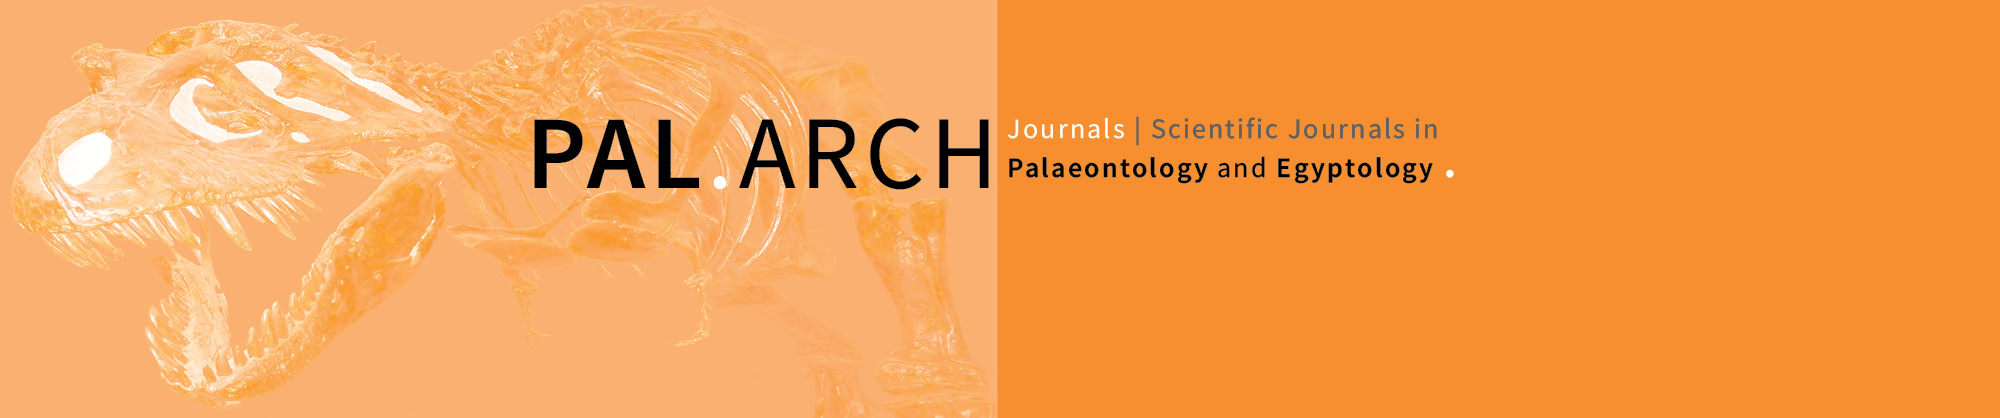 PalArch's Journal of Vertebrate Palaeontology